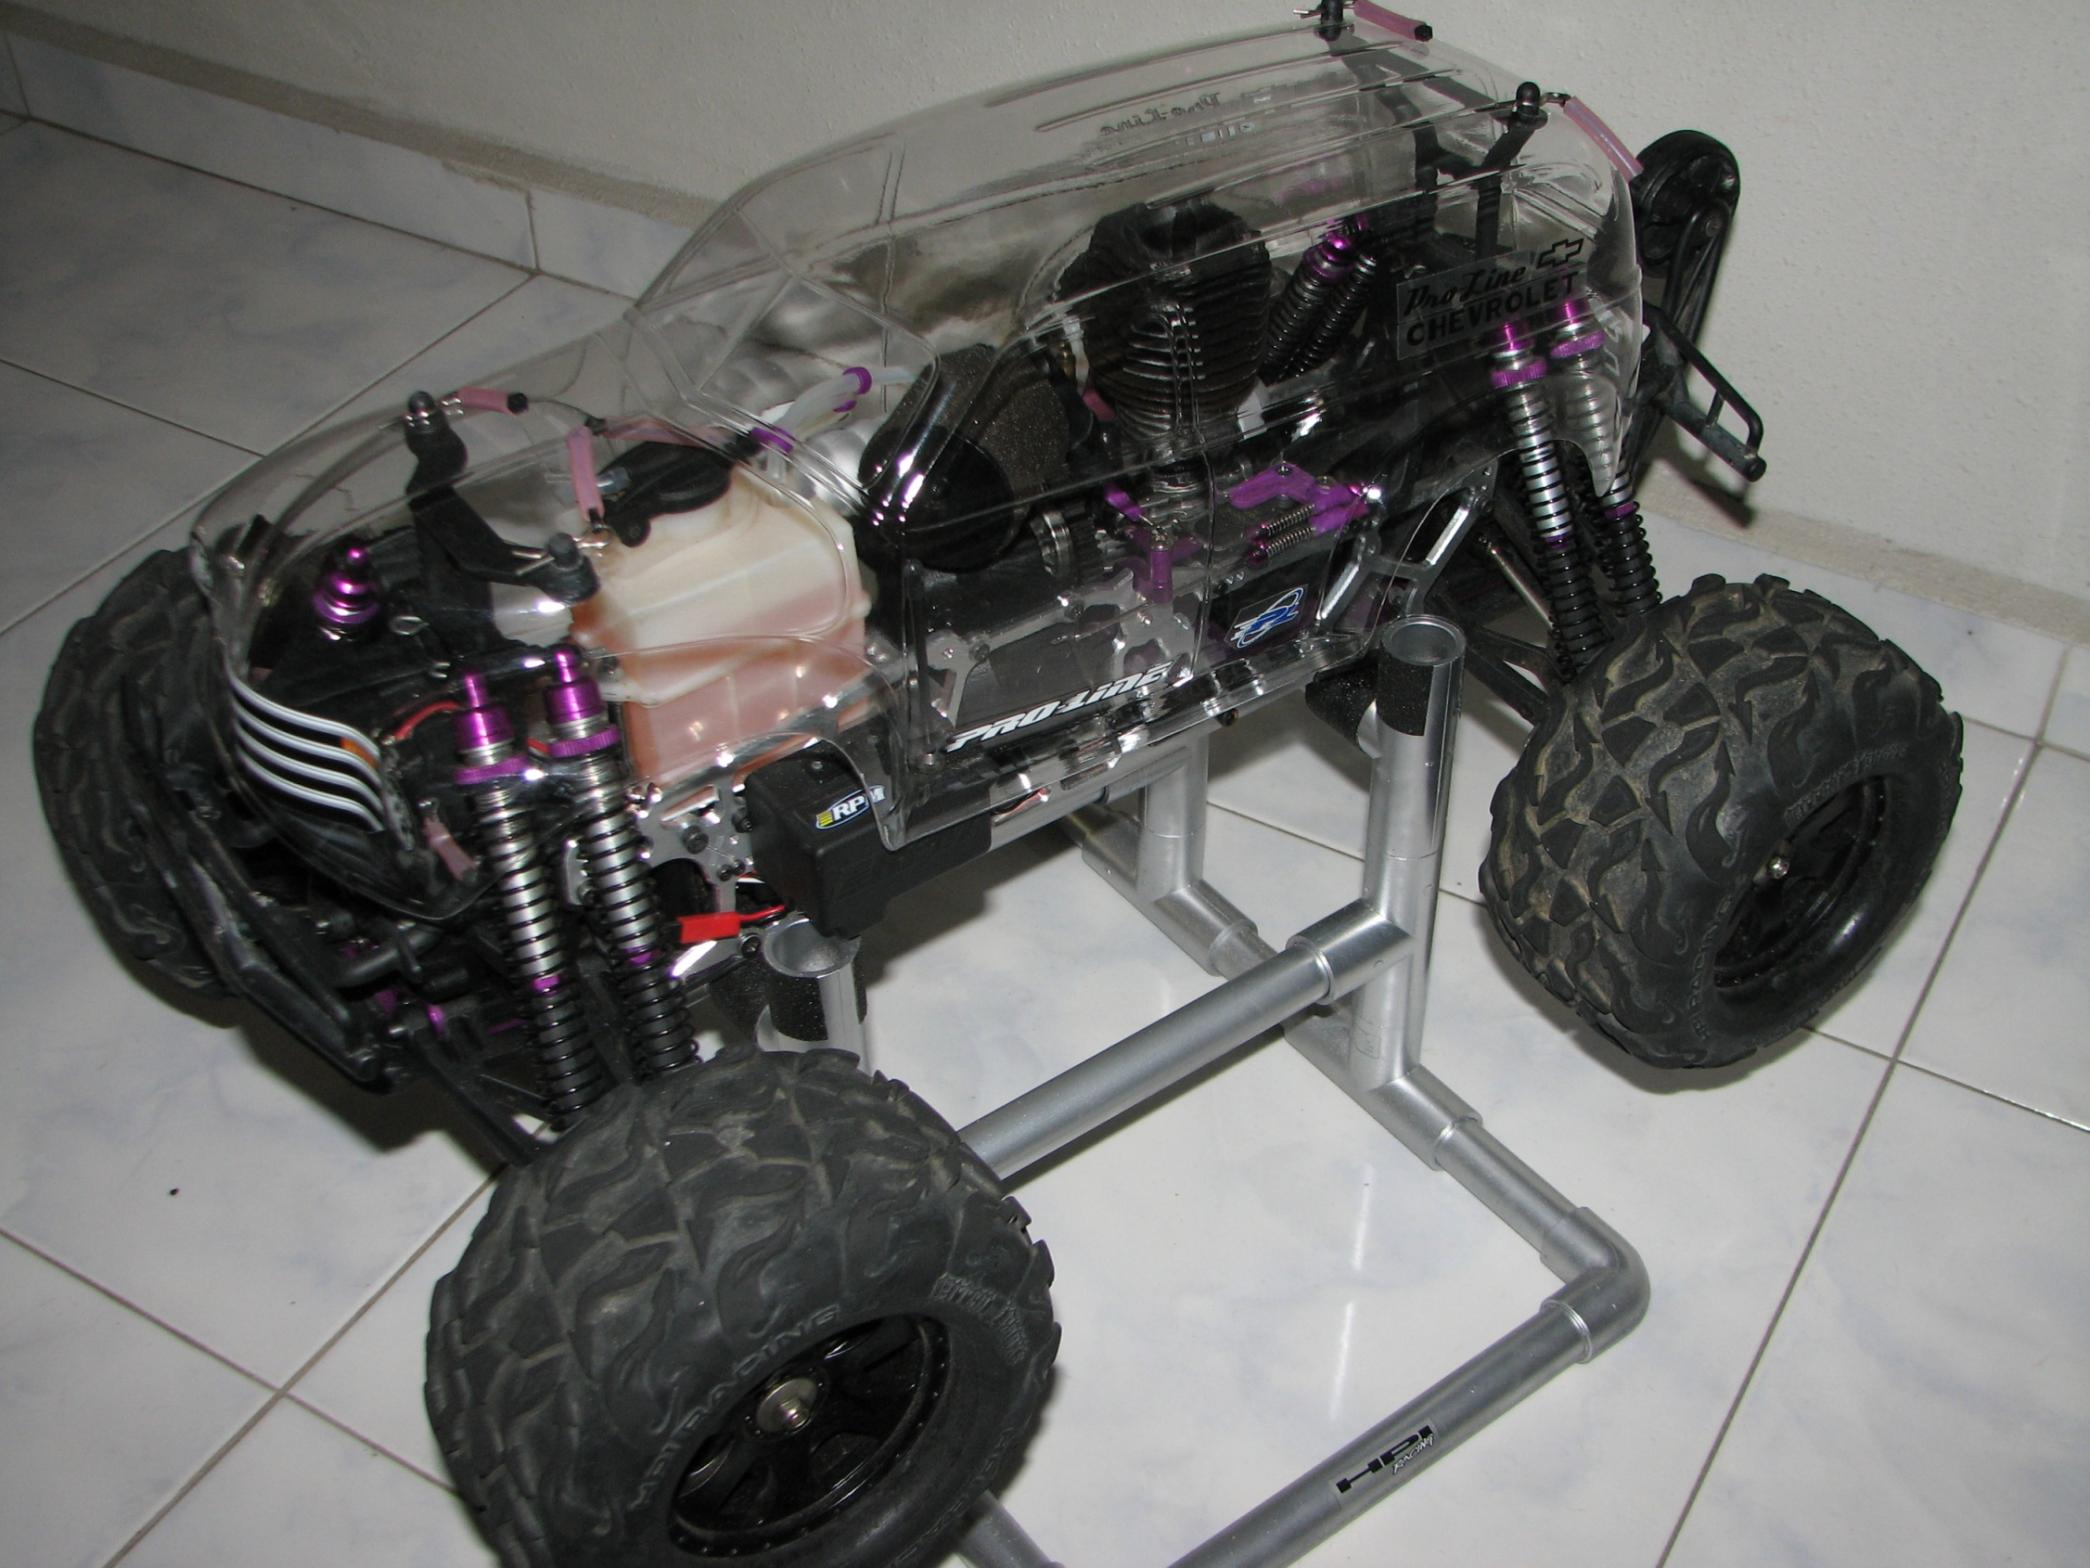 hpi savage x 4 6 flm ext lcg chassis r c tech forums. Black Bedroom Furniture Sets. Home Design Ideas